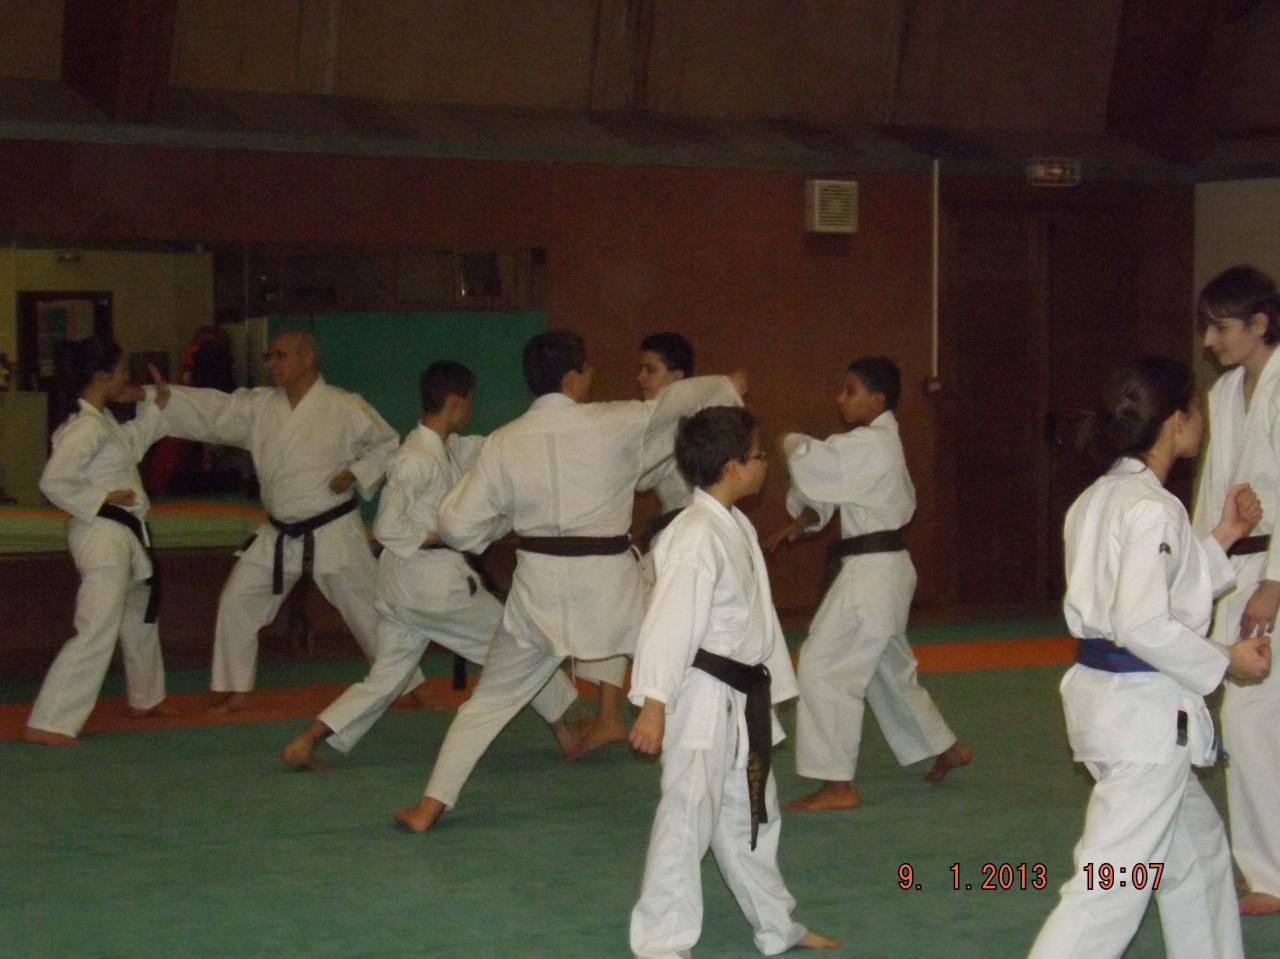 cours ados 9 01 2013